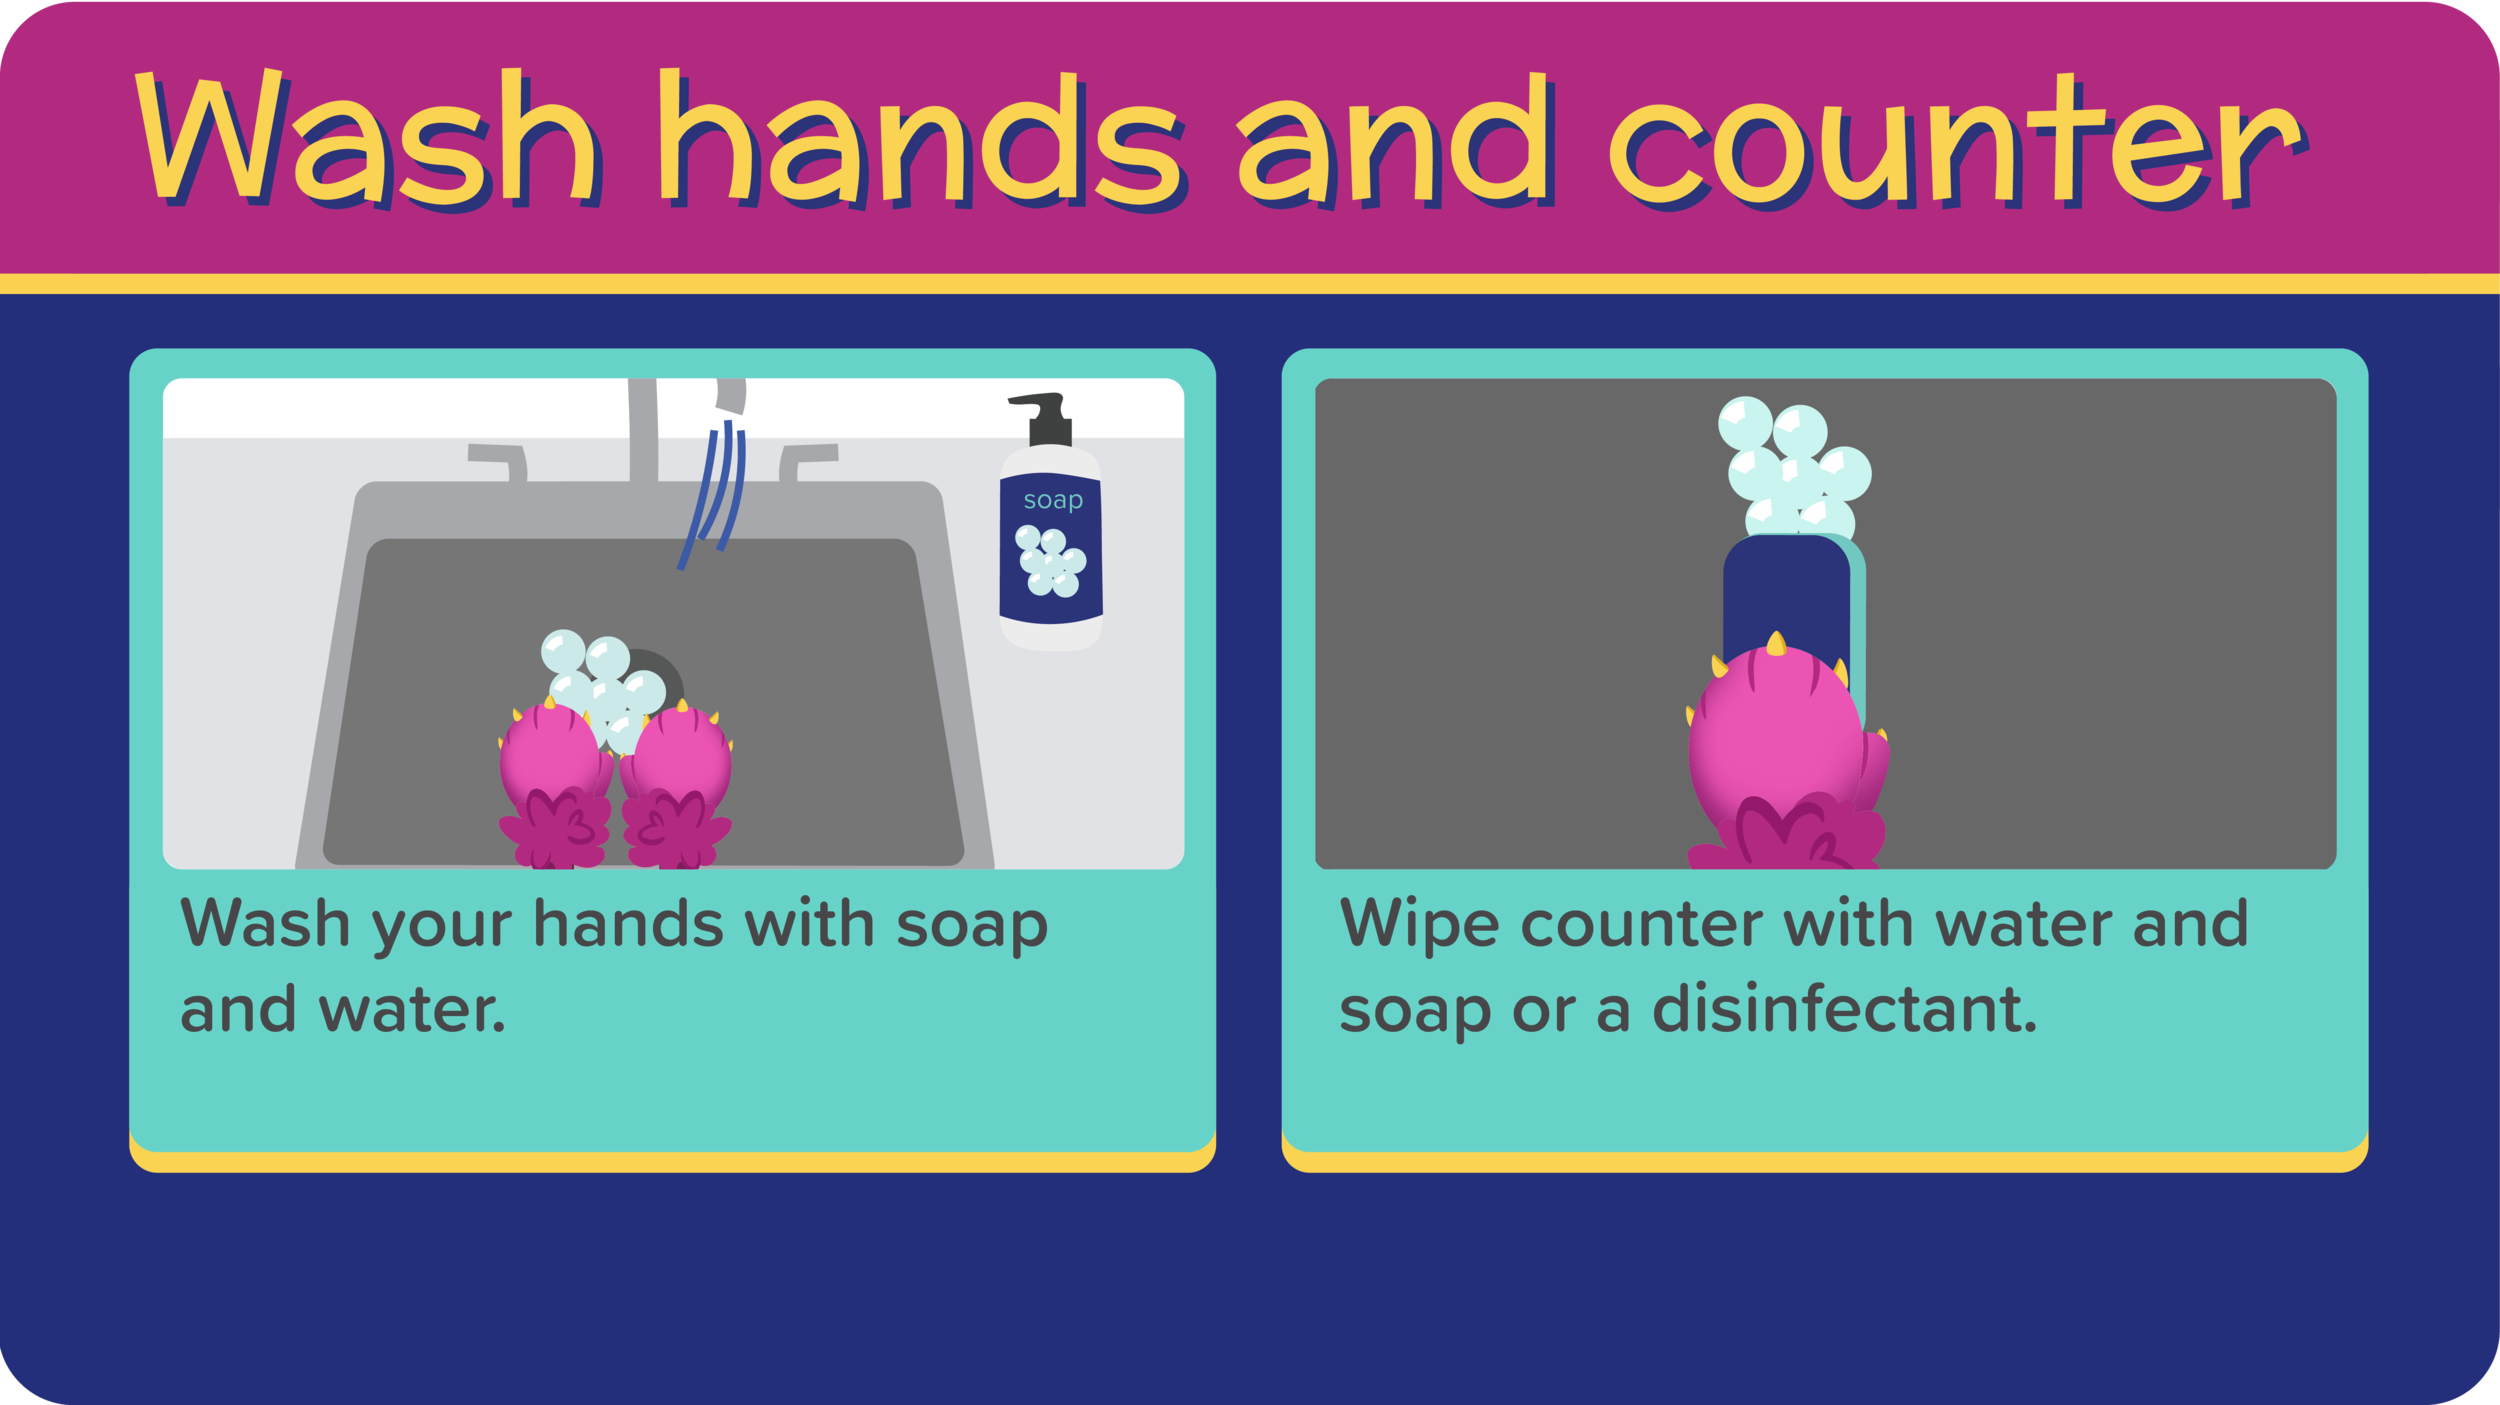 16_BlueberryMugMuffin_blueberry_wash hands counter.png